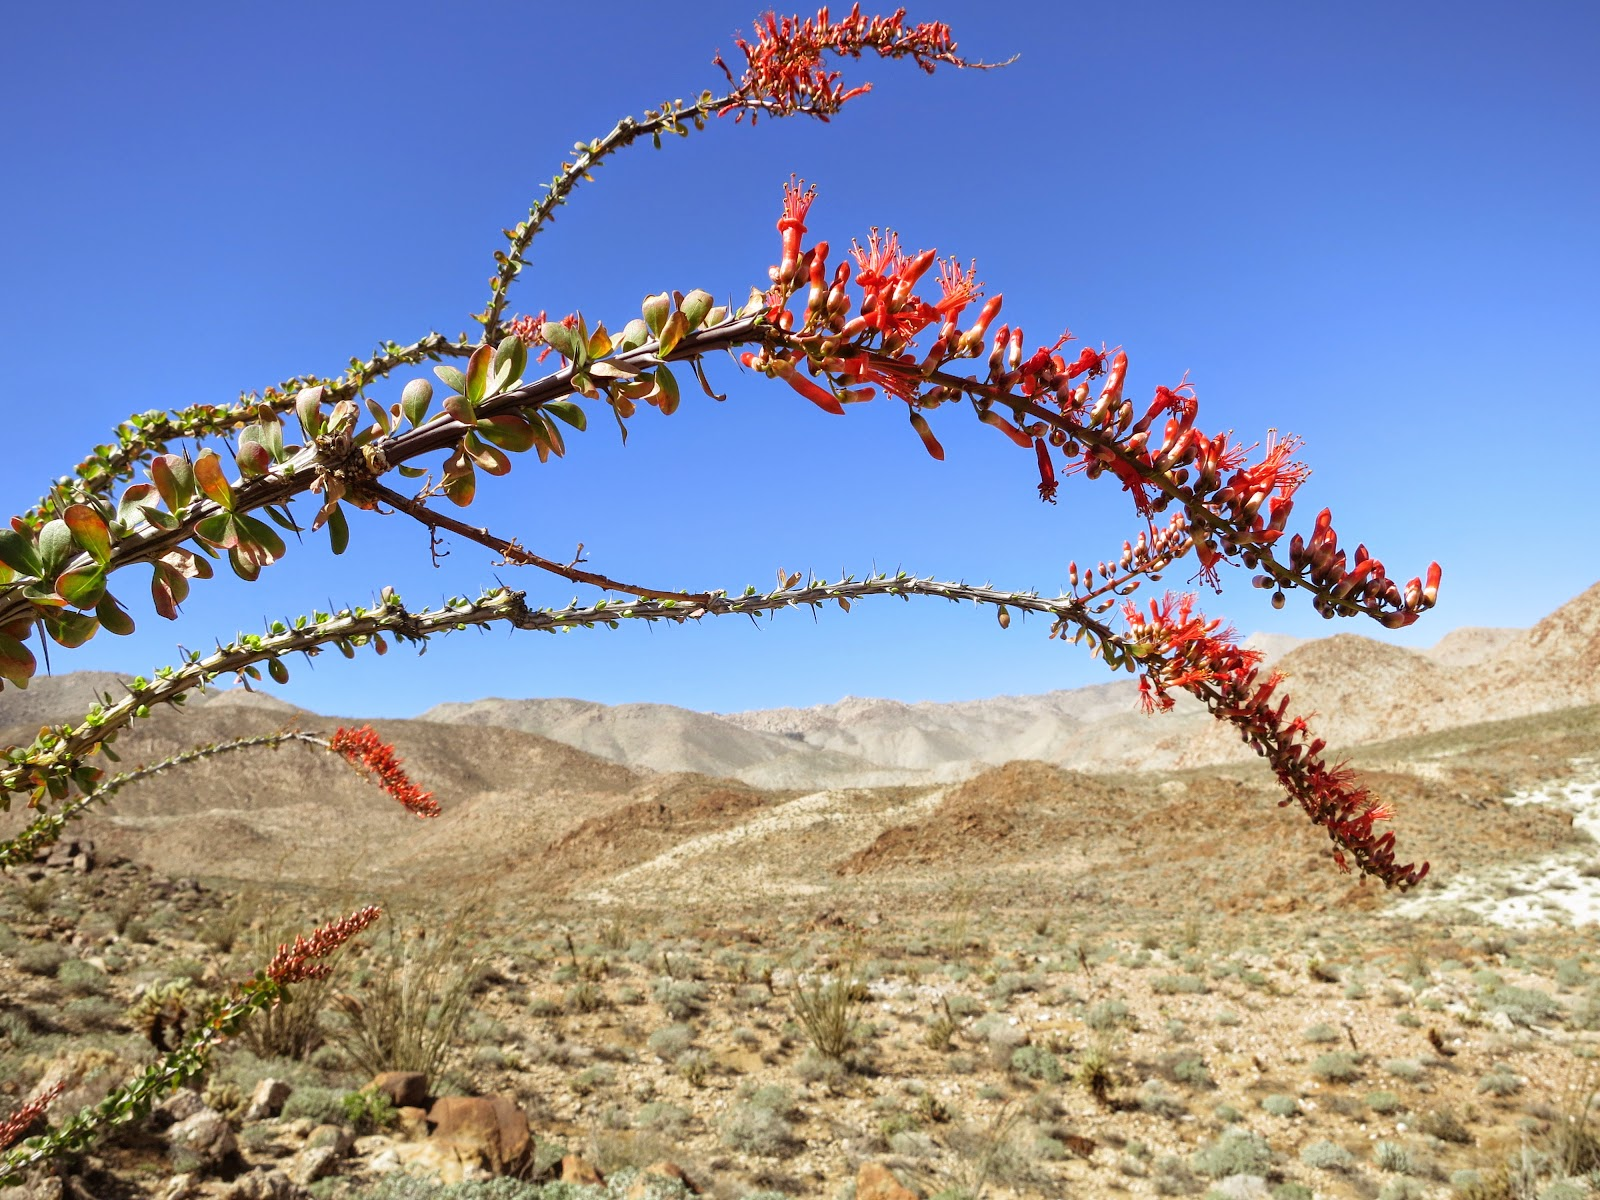 A few Ocotillo were displaying their fiery red tips.